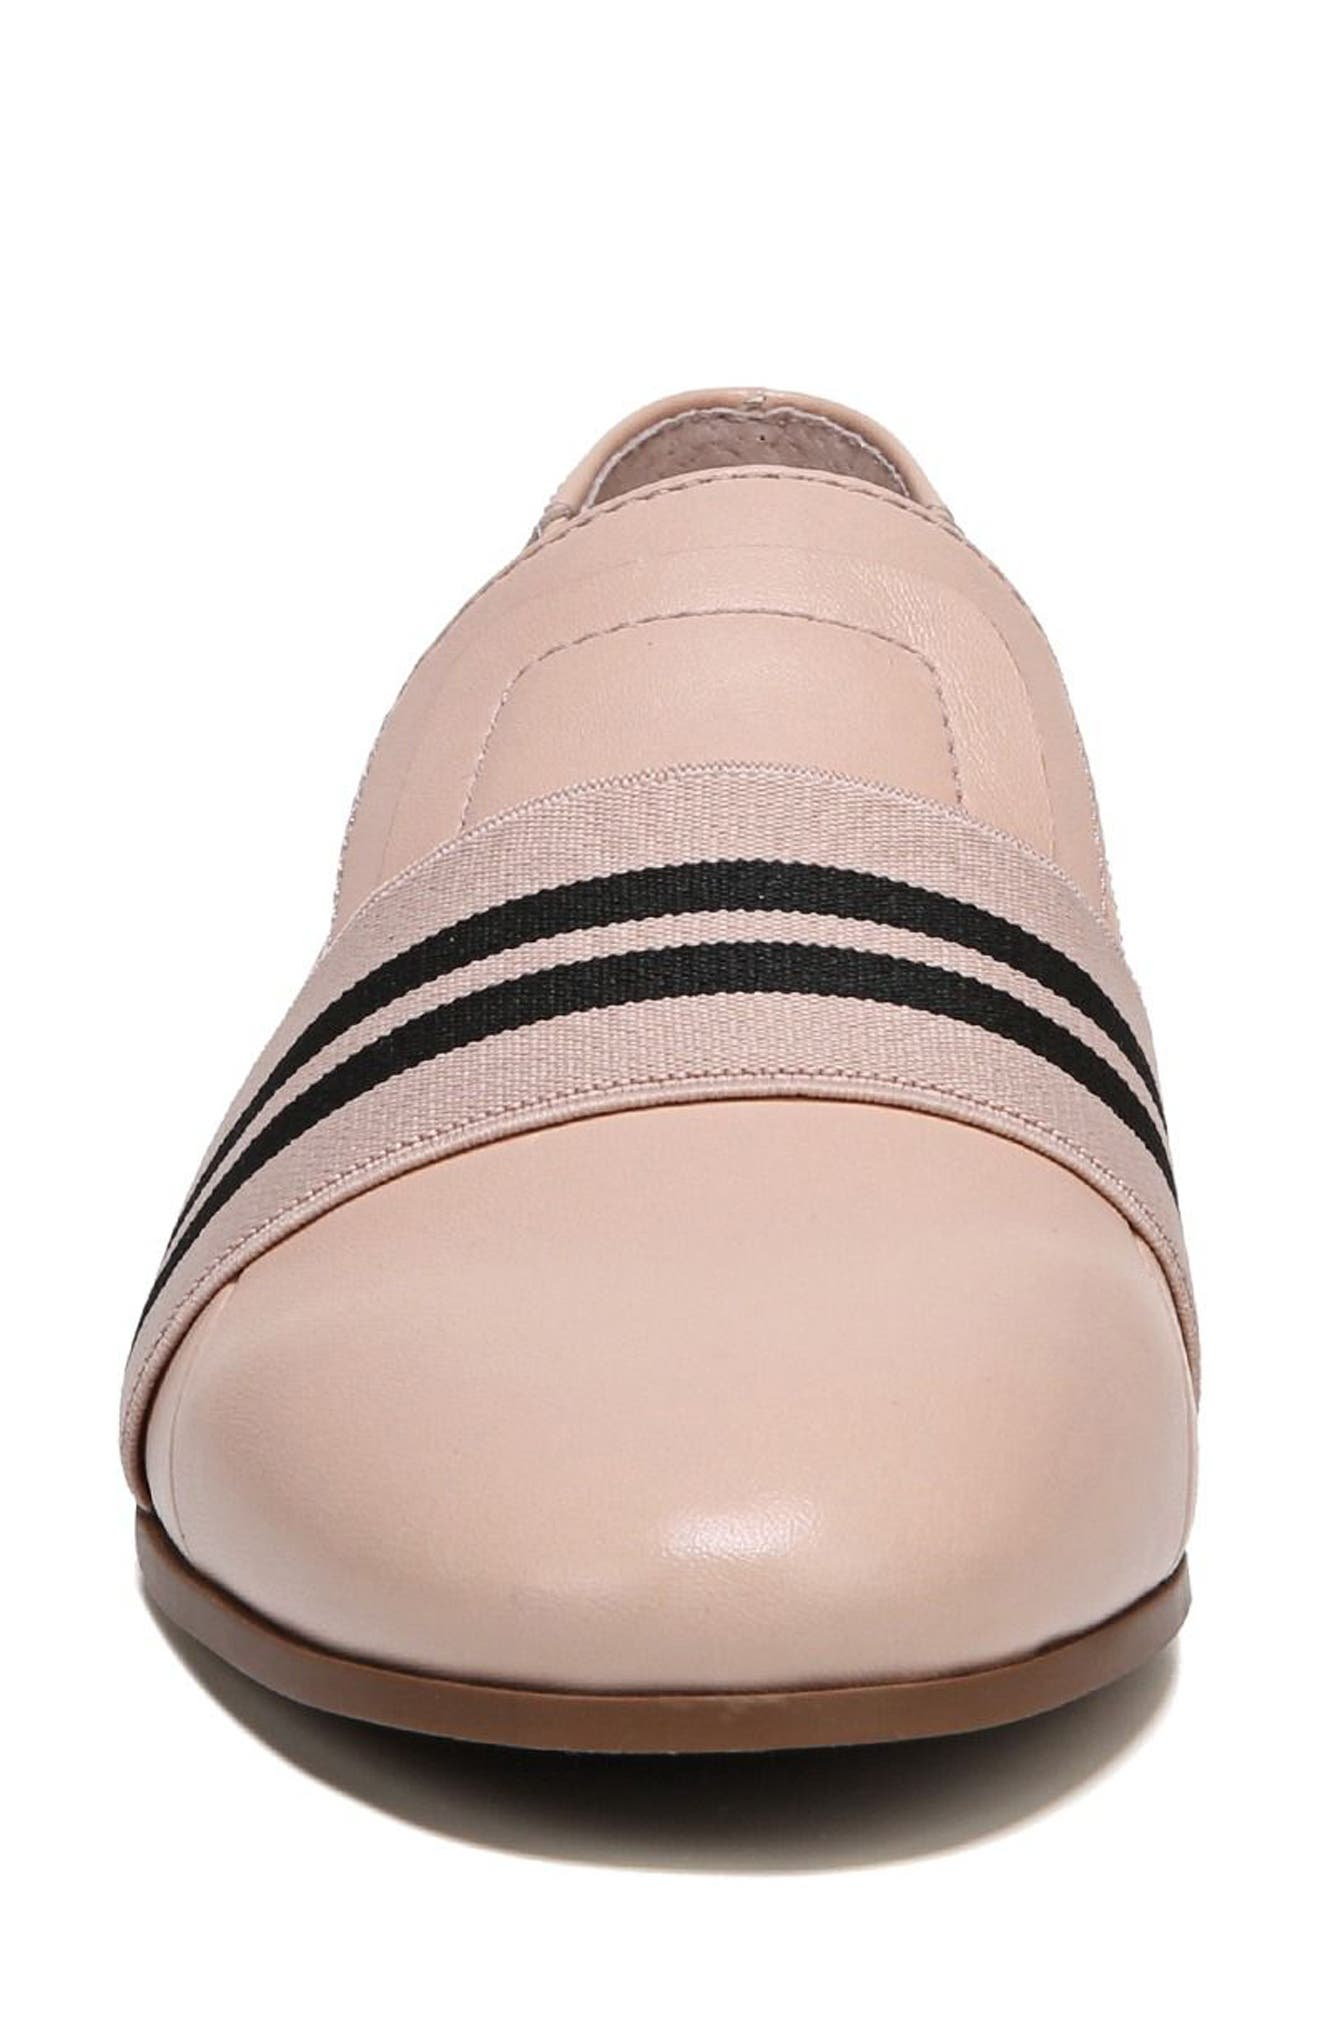 Odyssey Loafer,                             Alternate thumbnail 5, color,                             Blush Leather